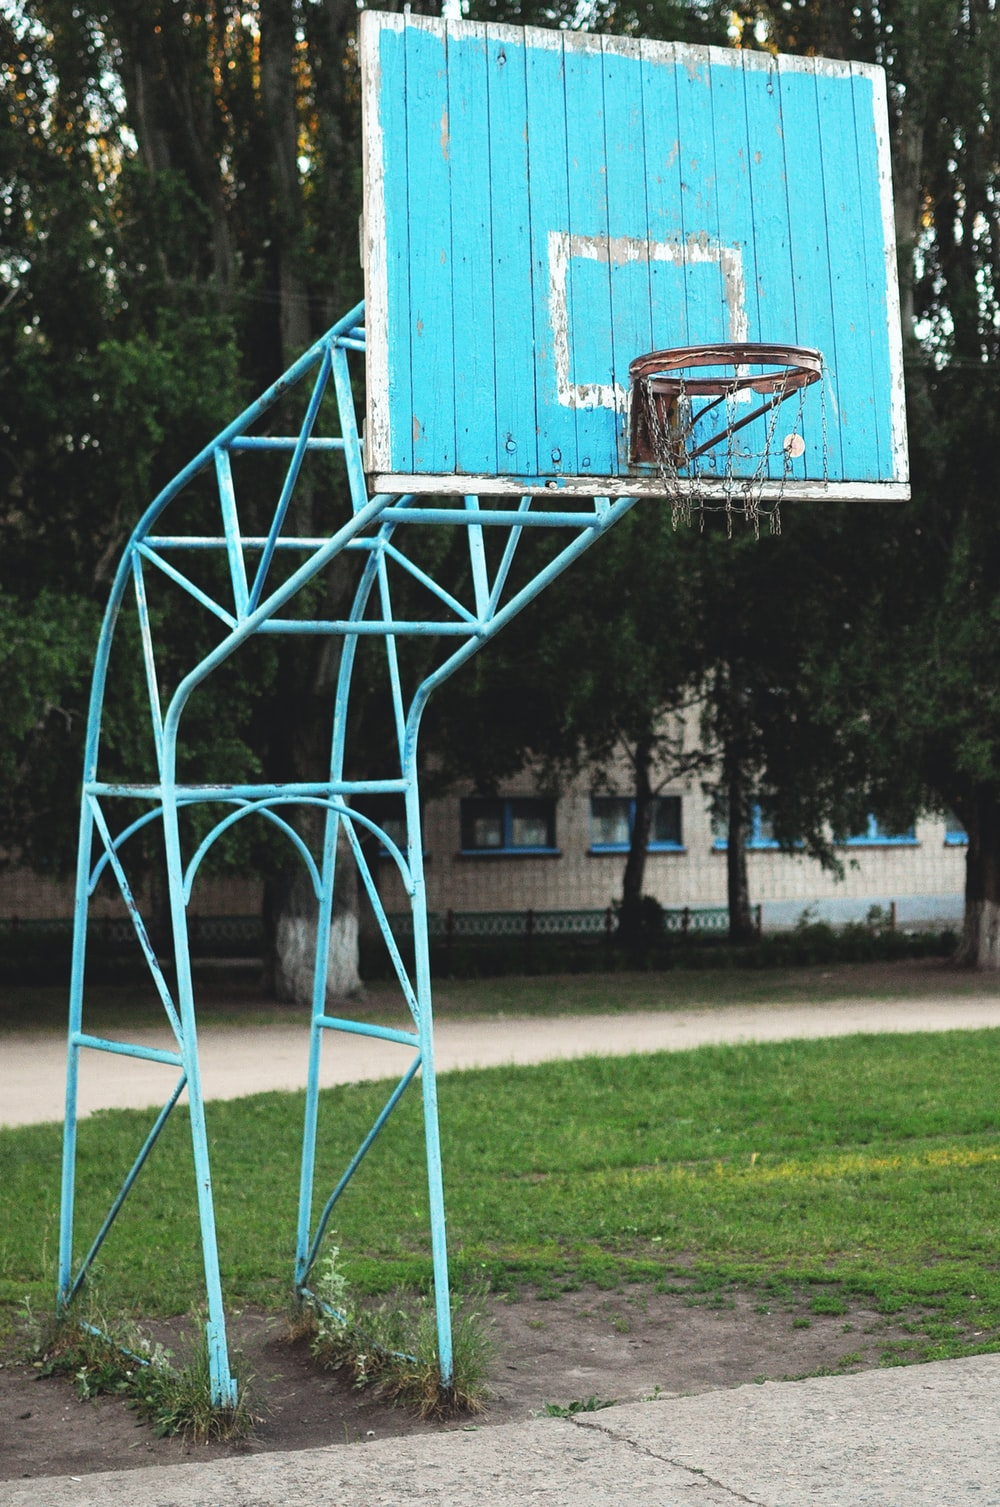 blue basketball hoop during daytime